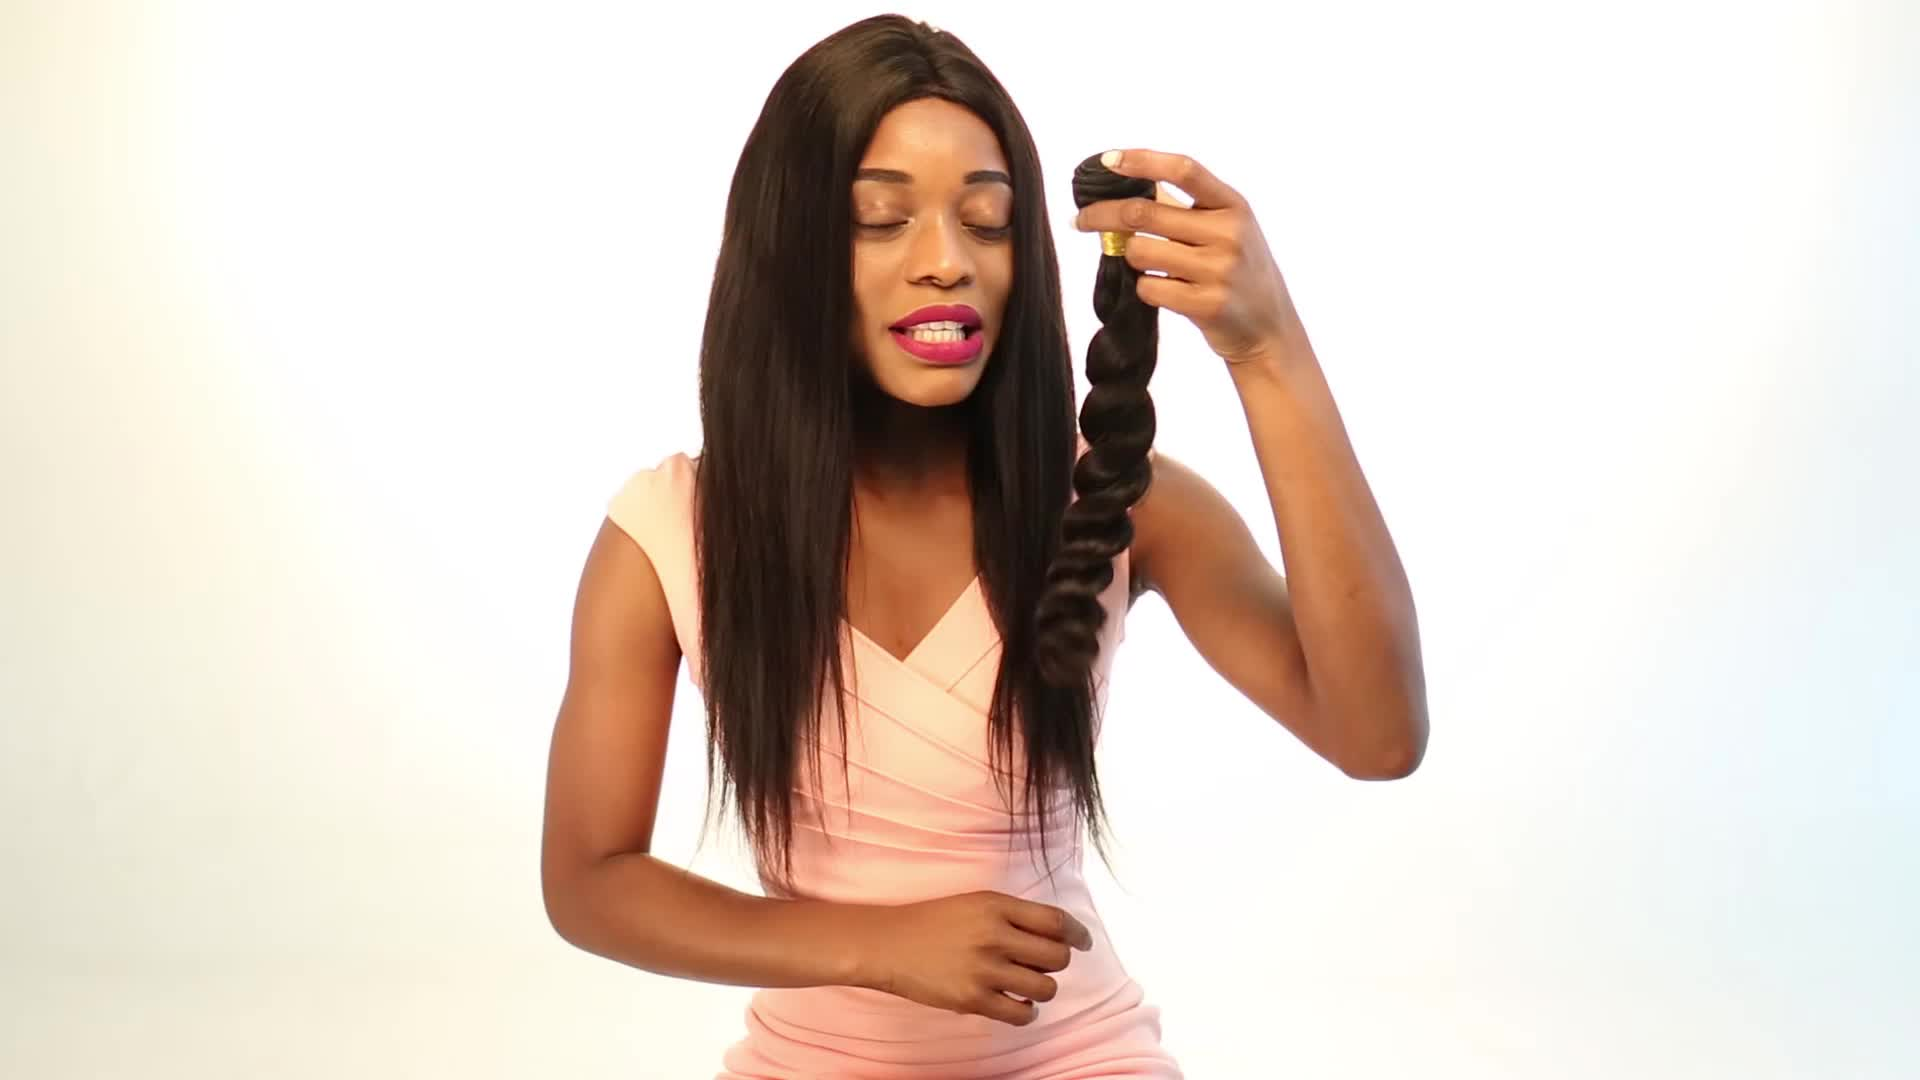 tangle free shedding free natural human hair indian remy hair body weave100g